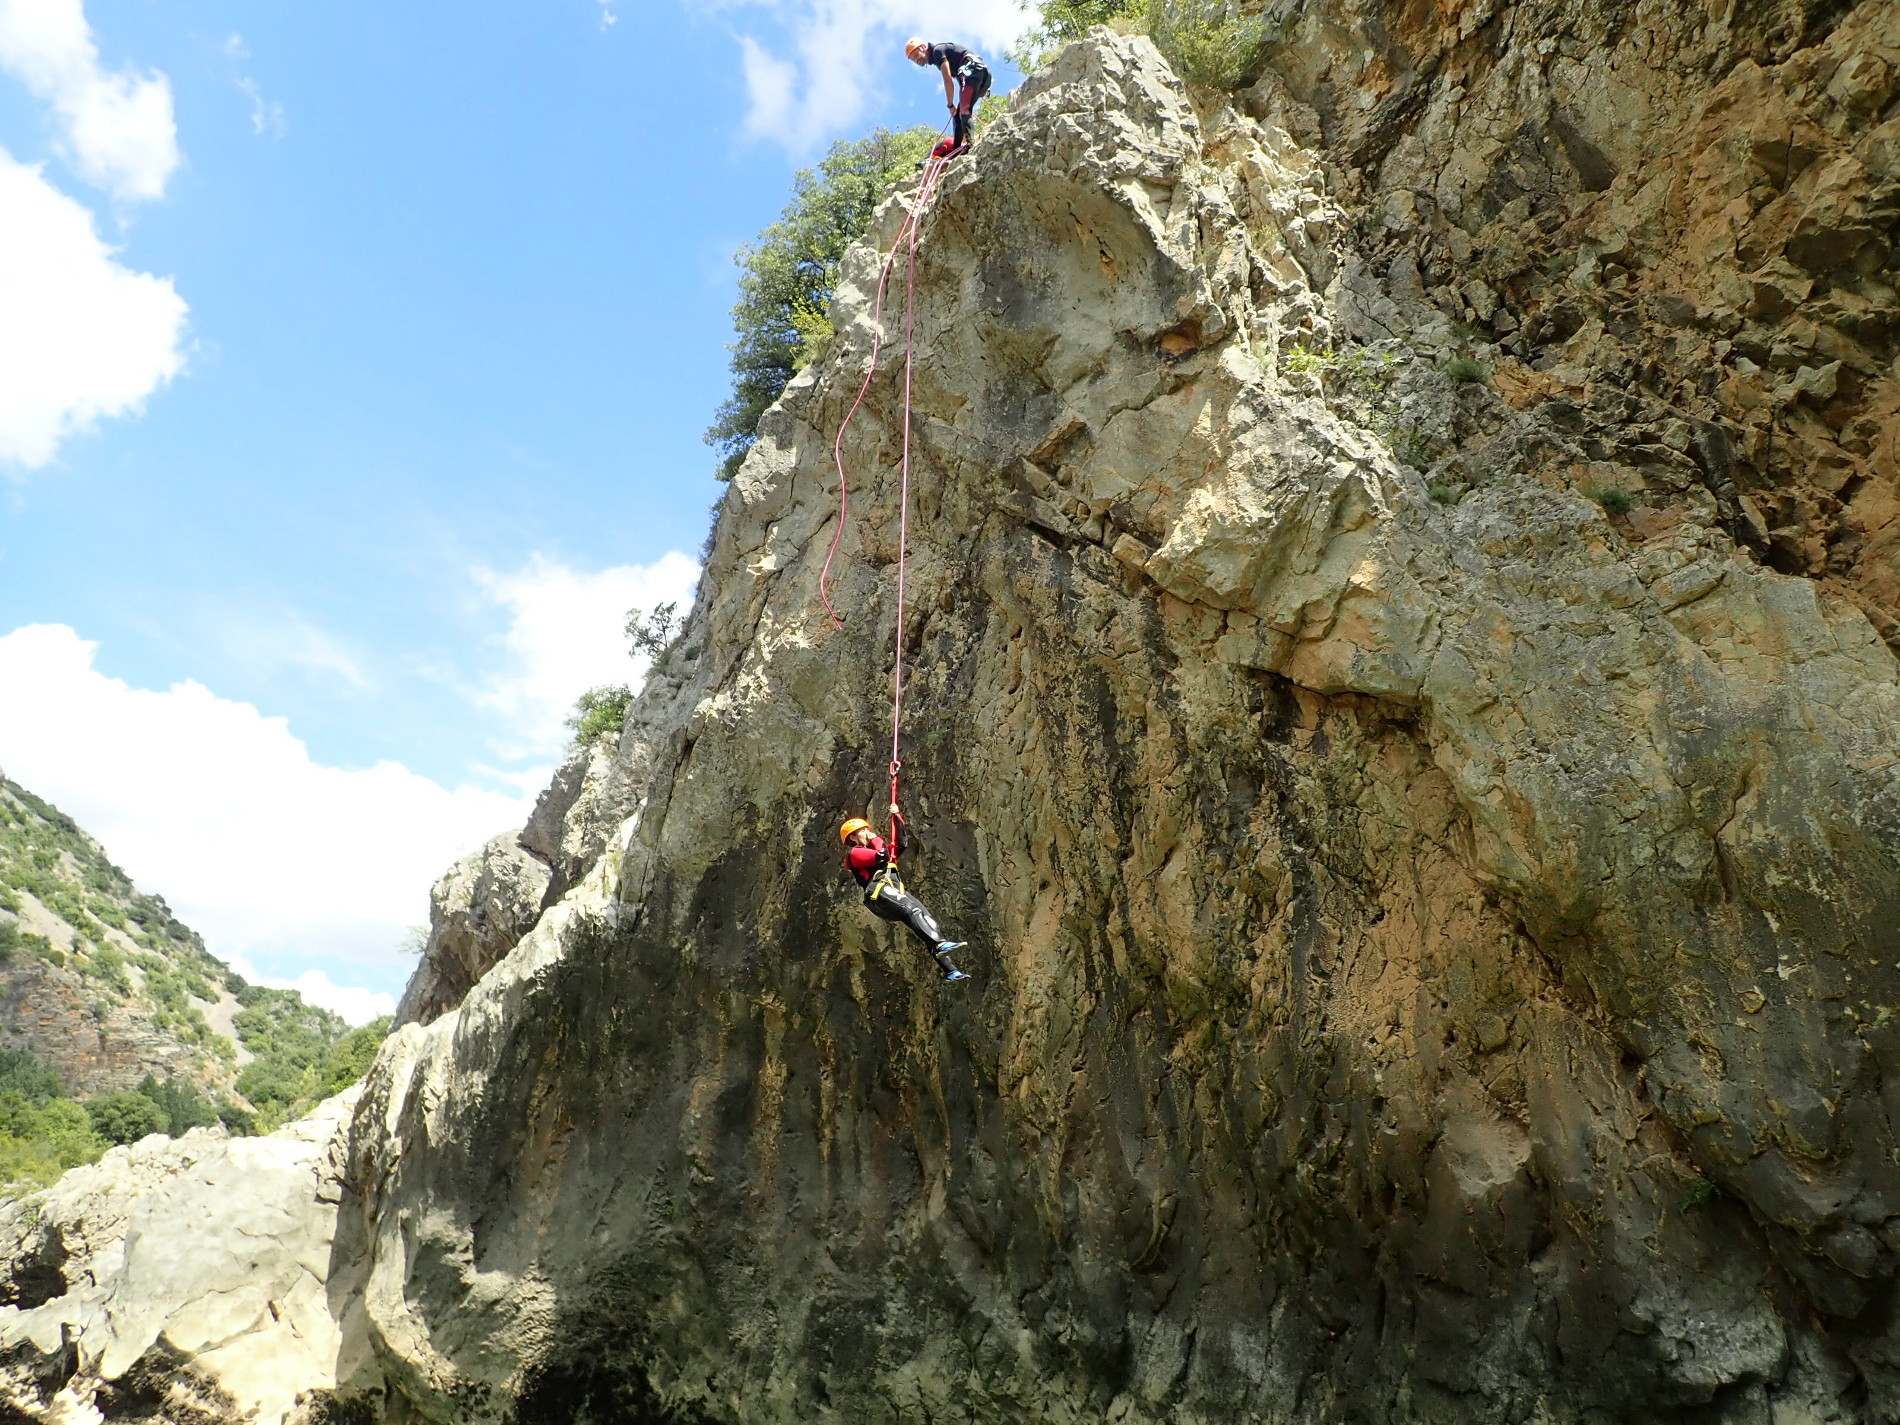 canyon-diable-montpellier-herault-guilhem1